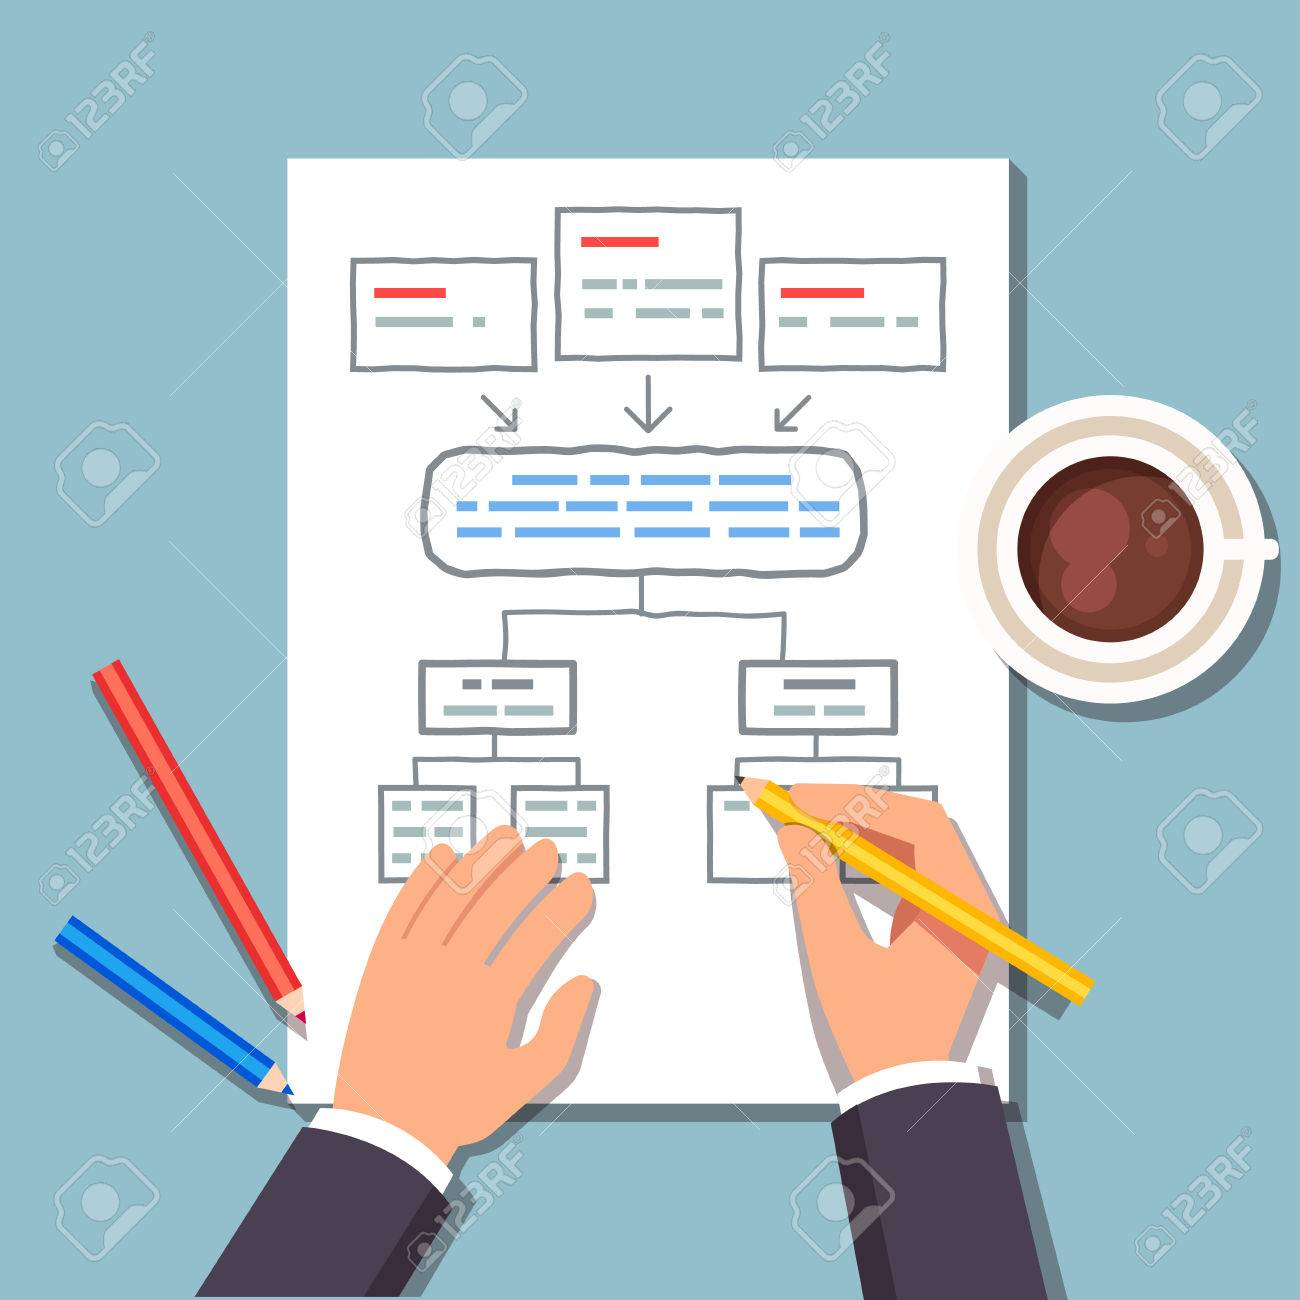 business man drawing a block diagram plan while drinking his Block Diagram Business Process options or steps business concept